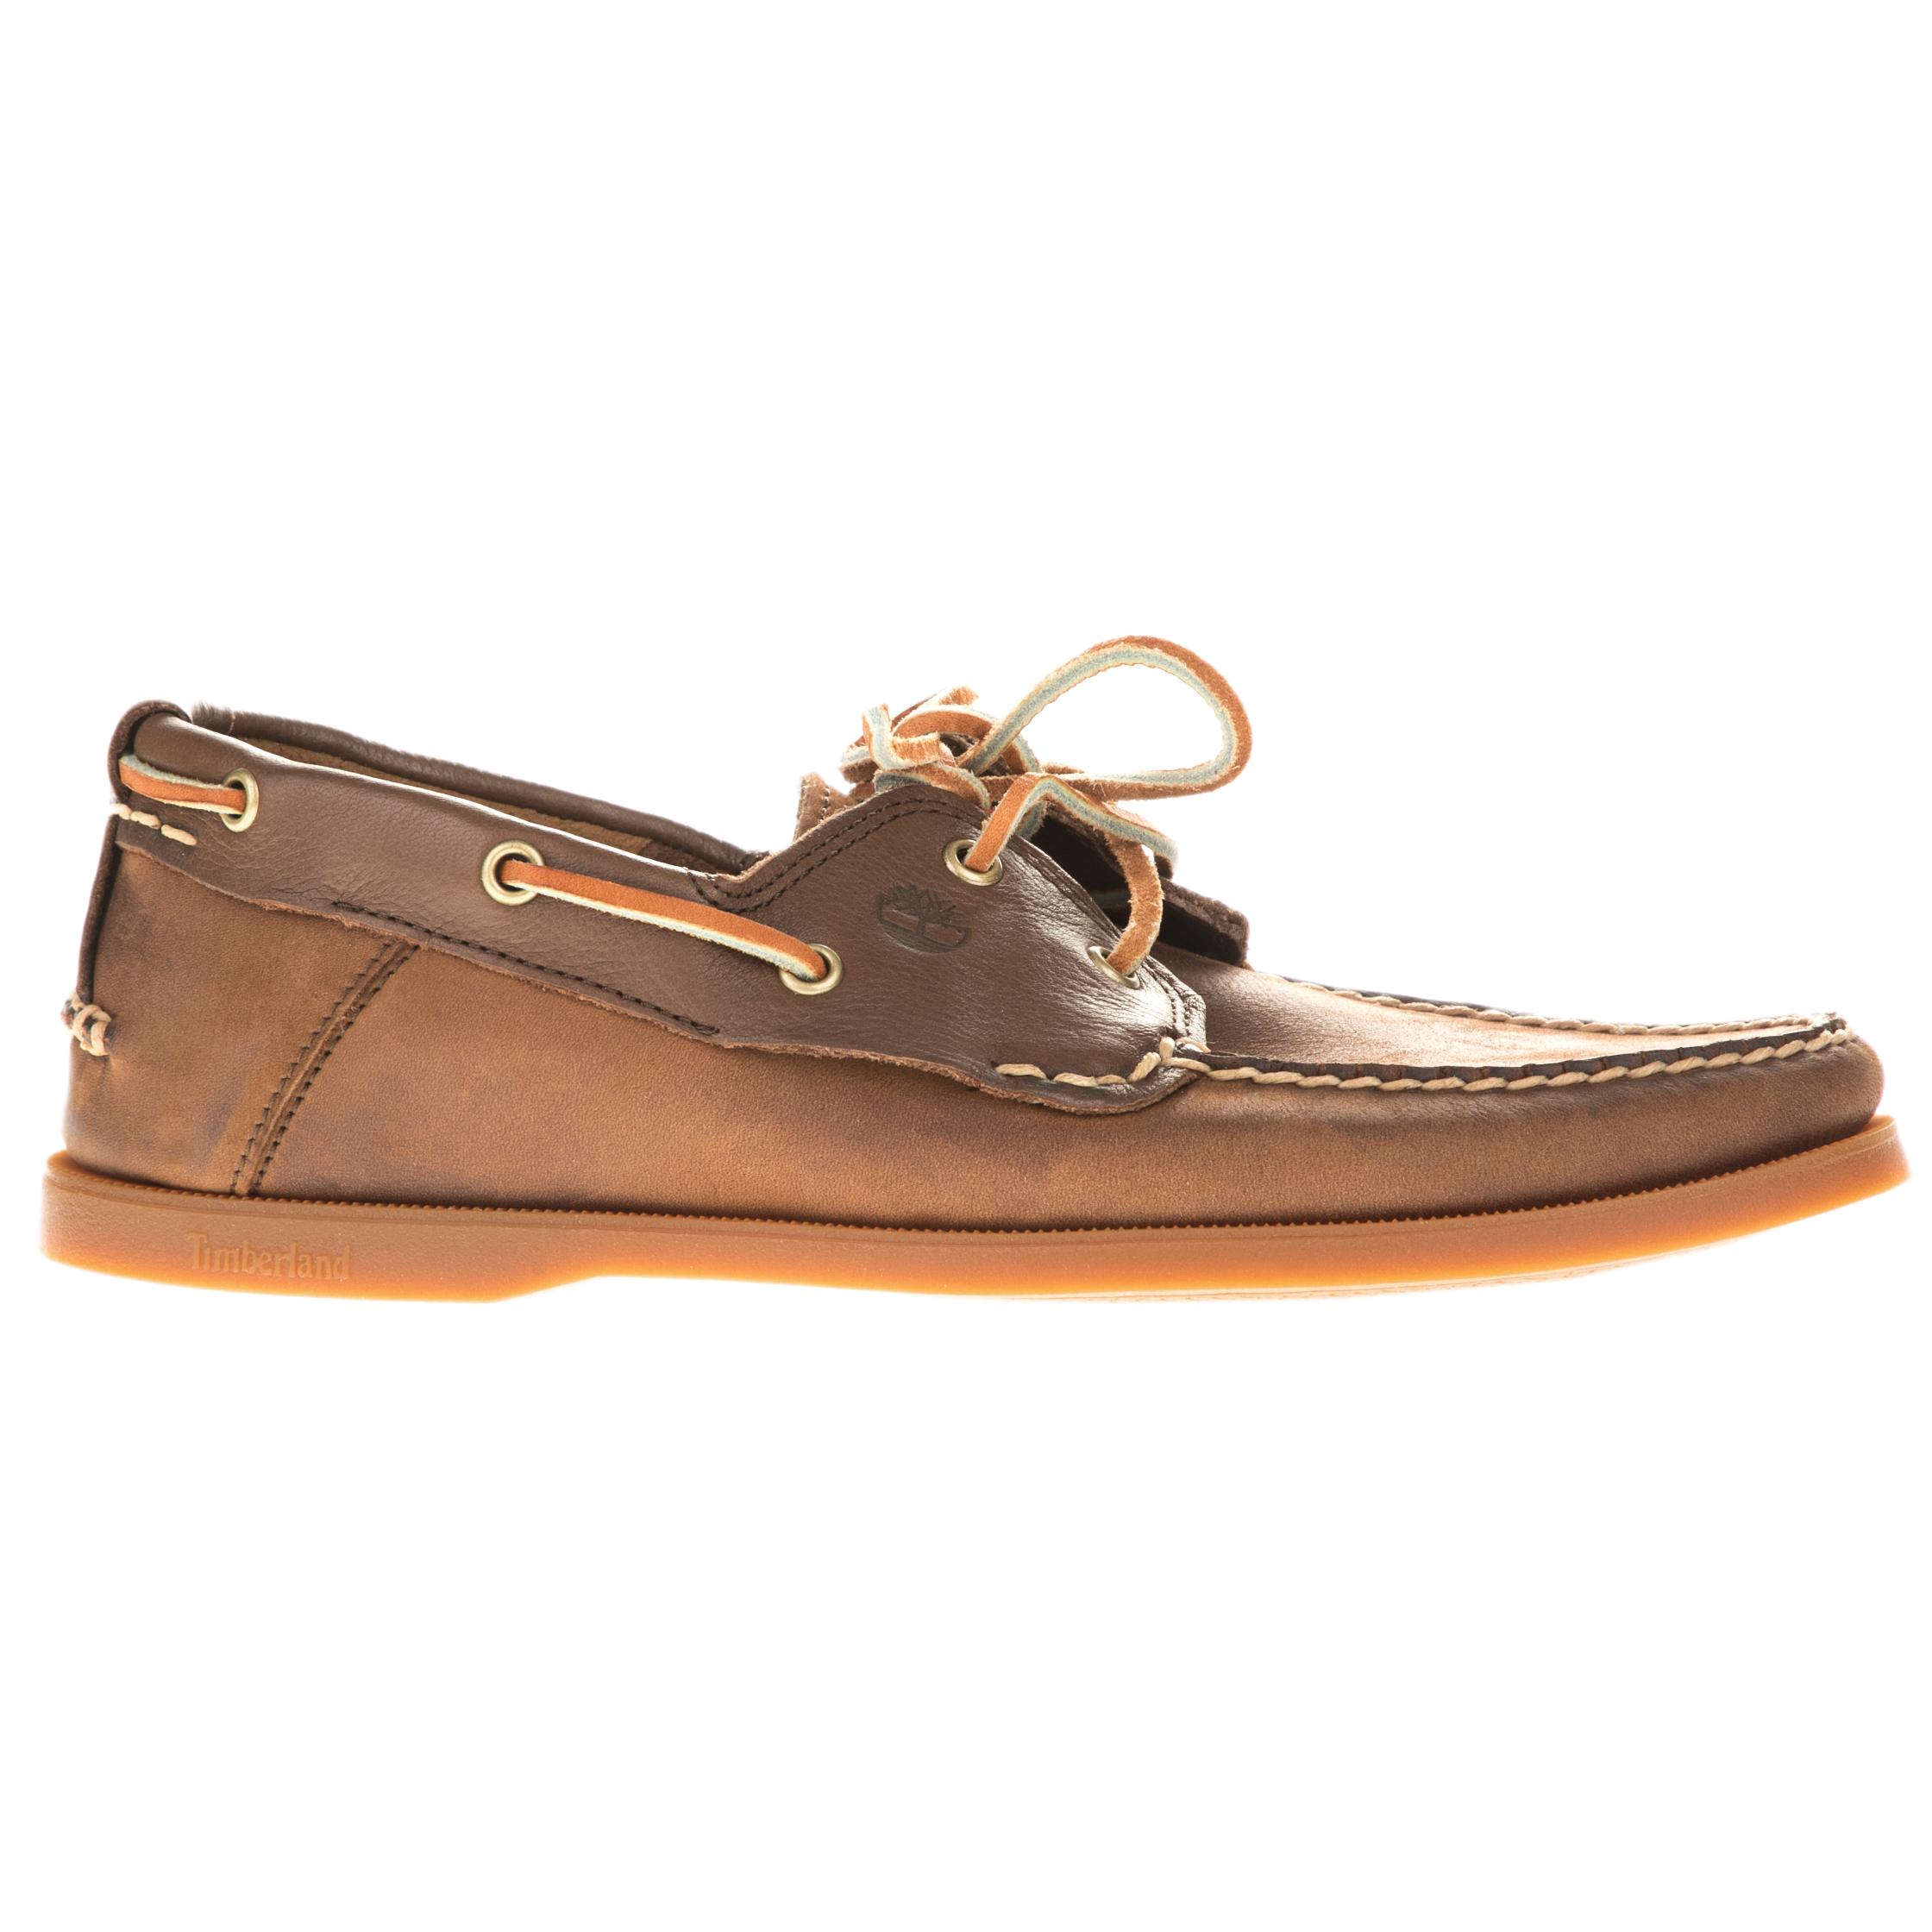 TIMBERLAND - Ανδρικά boat shoes TIMBERLAND 6306A CLASSIC TWO EYE καφέ ανδρικά παπούτσια boat shoes